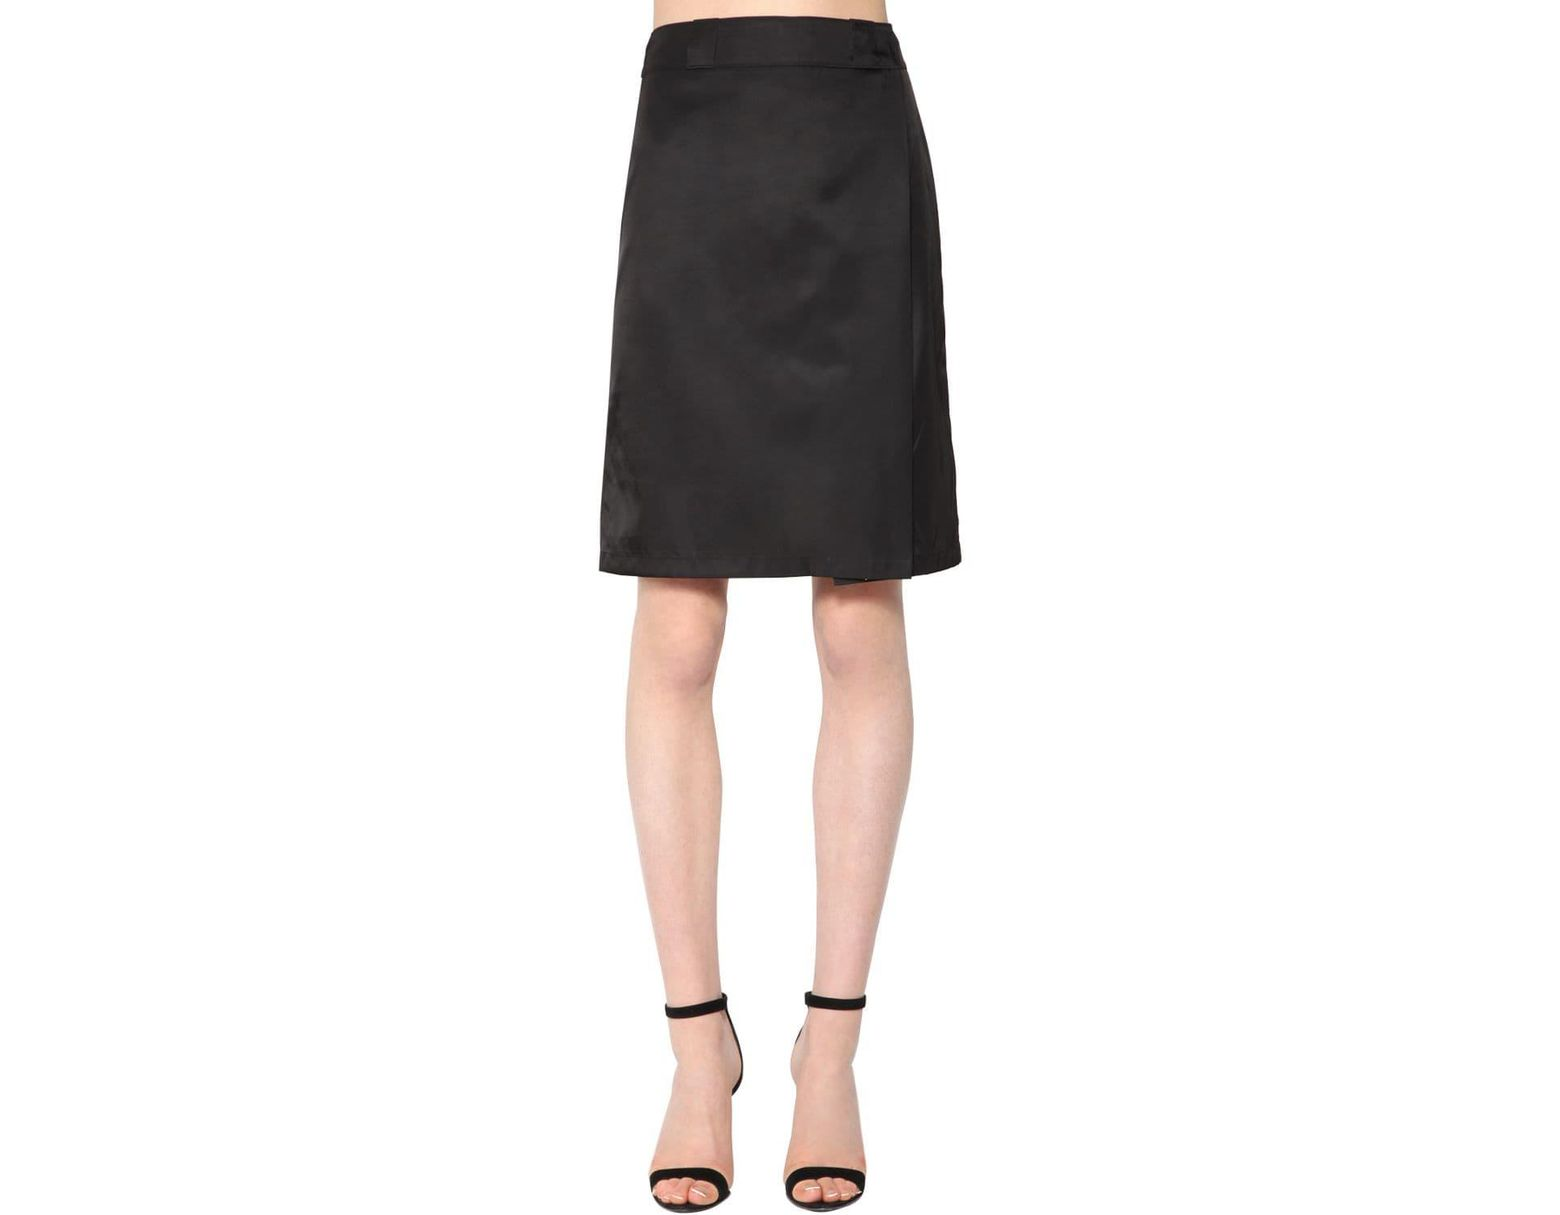 9b3272c88 Prada Nylon Gabardine Skirt in Black - Lyst